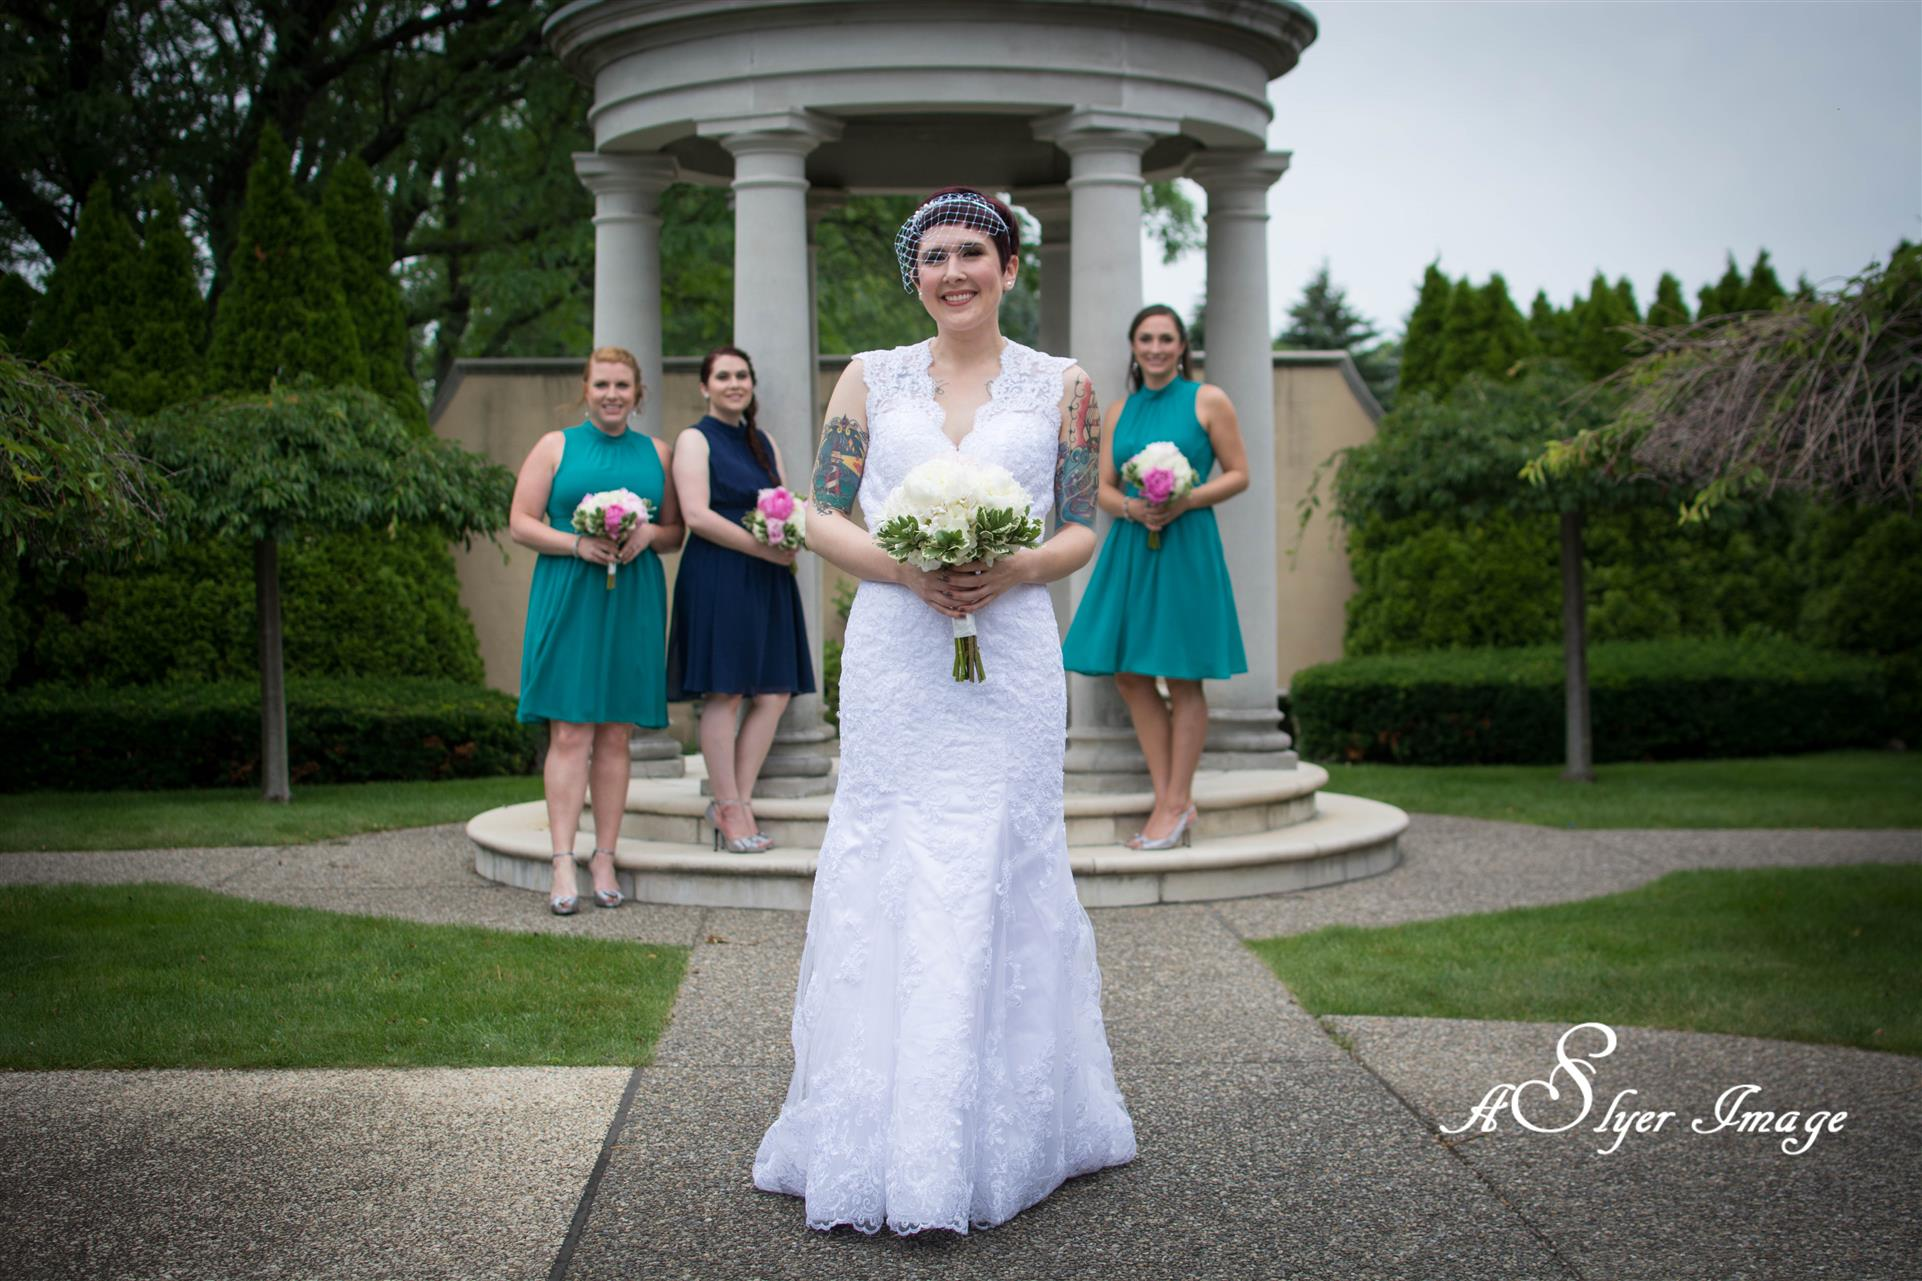 Bride and bridesmaids holding bouquets in front of columned structure